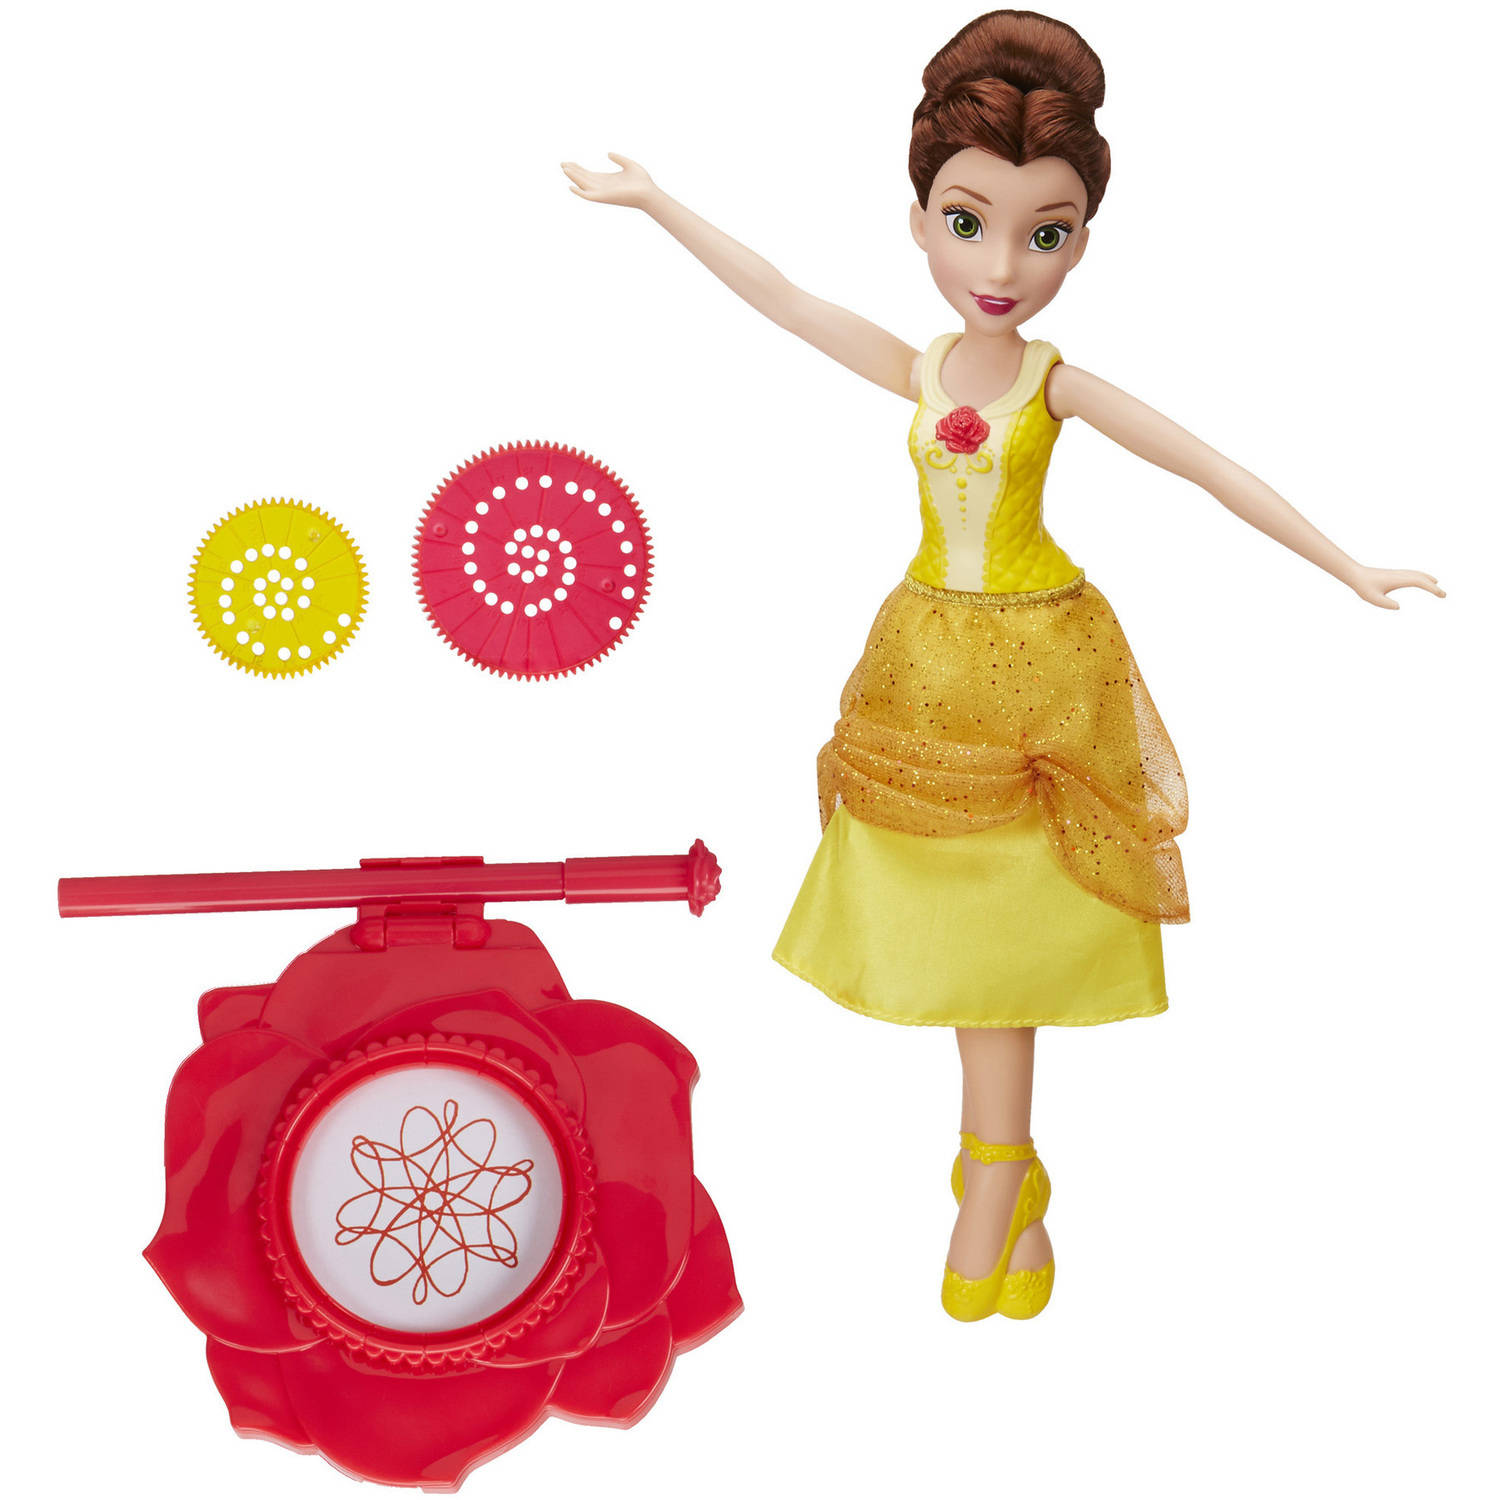 Disney Princess Dancing Doodles Belle by Hasbro